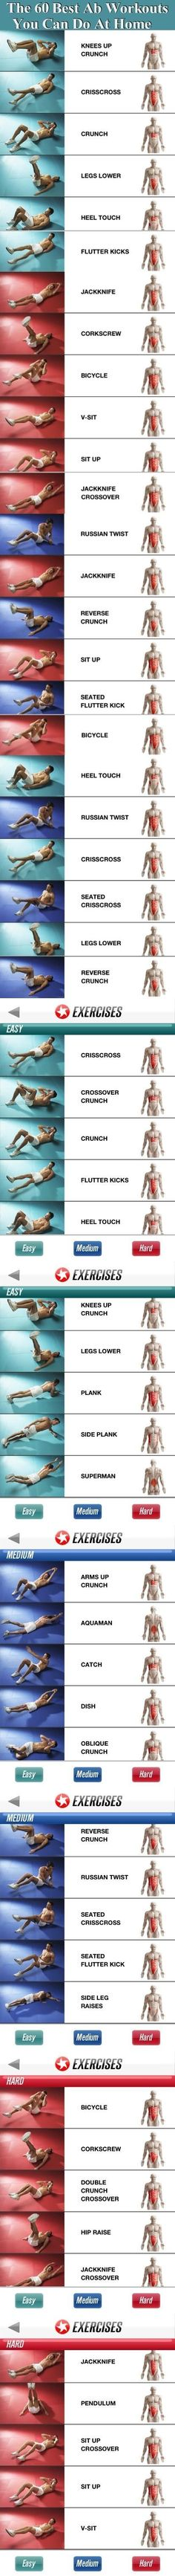 nice The 60 Best Ab Workouts You Can Do From Home